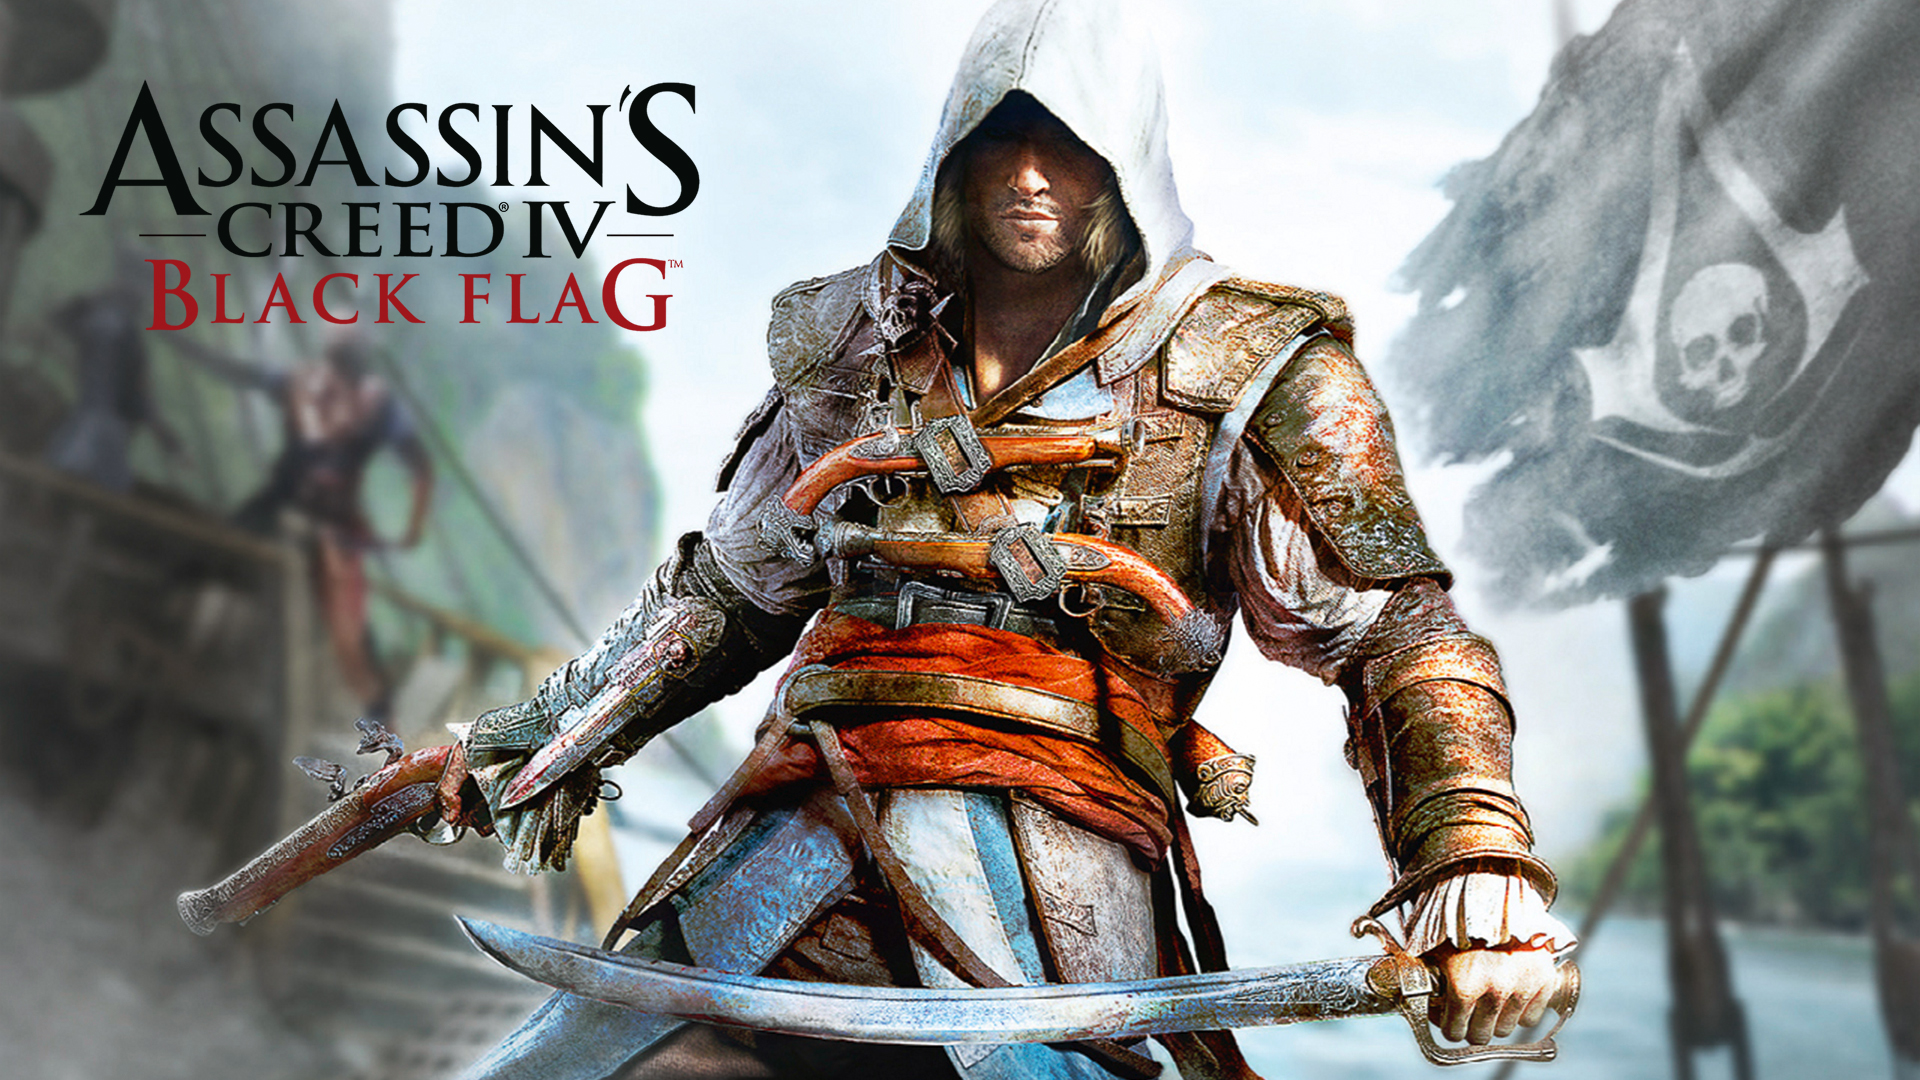 Assassins-Creed-IV-Black-Flag-Poster